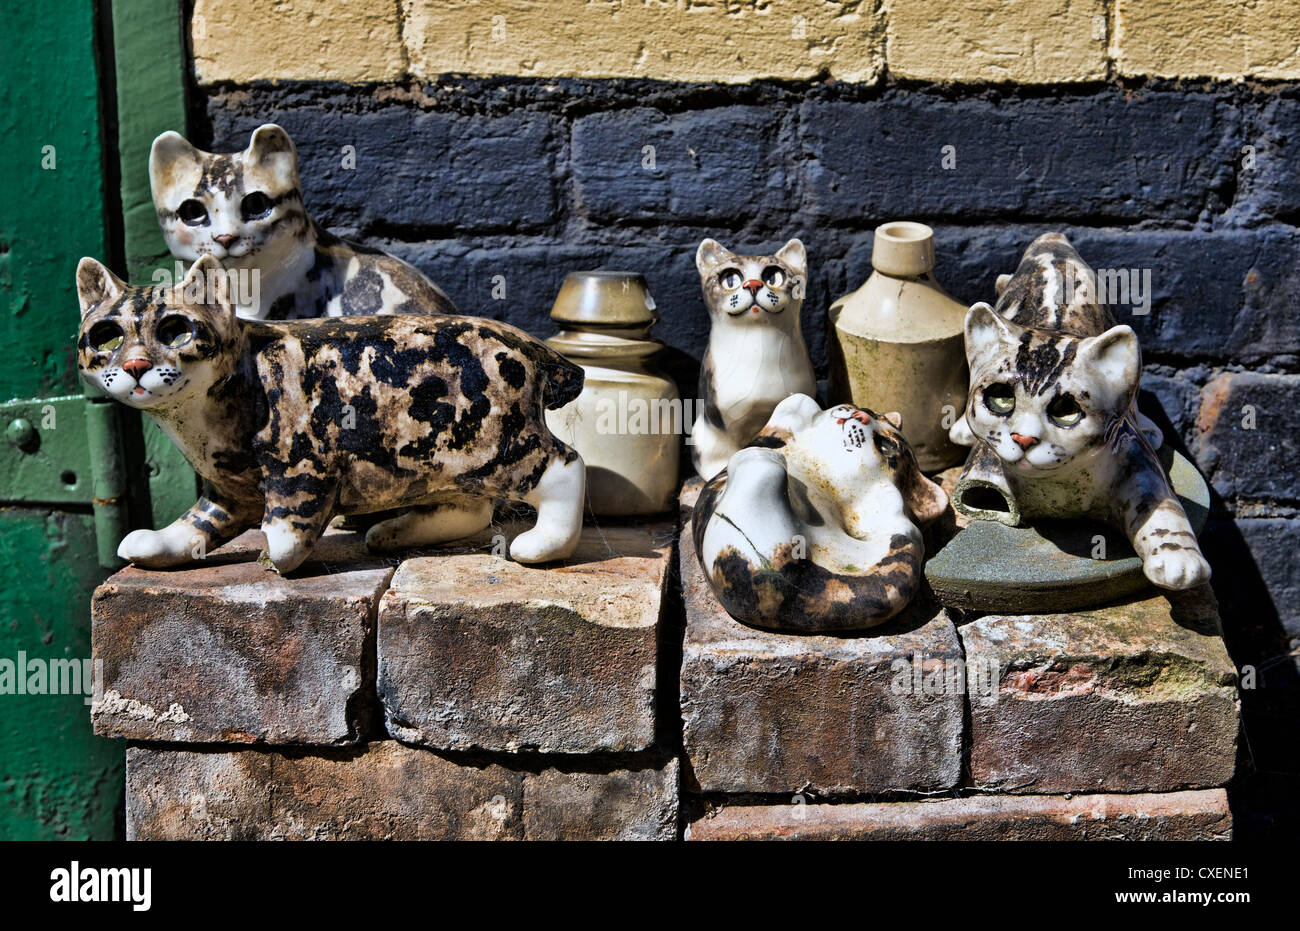 A collection of Winstanley pottery cats arranged outdoors on bricks. Norfolk, UK. Stock Photo